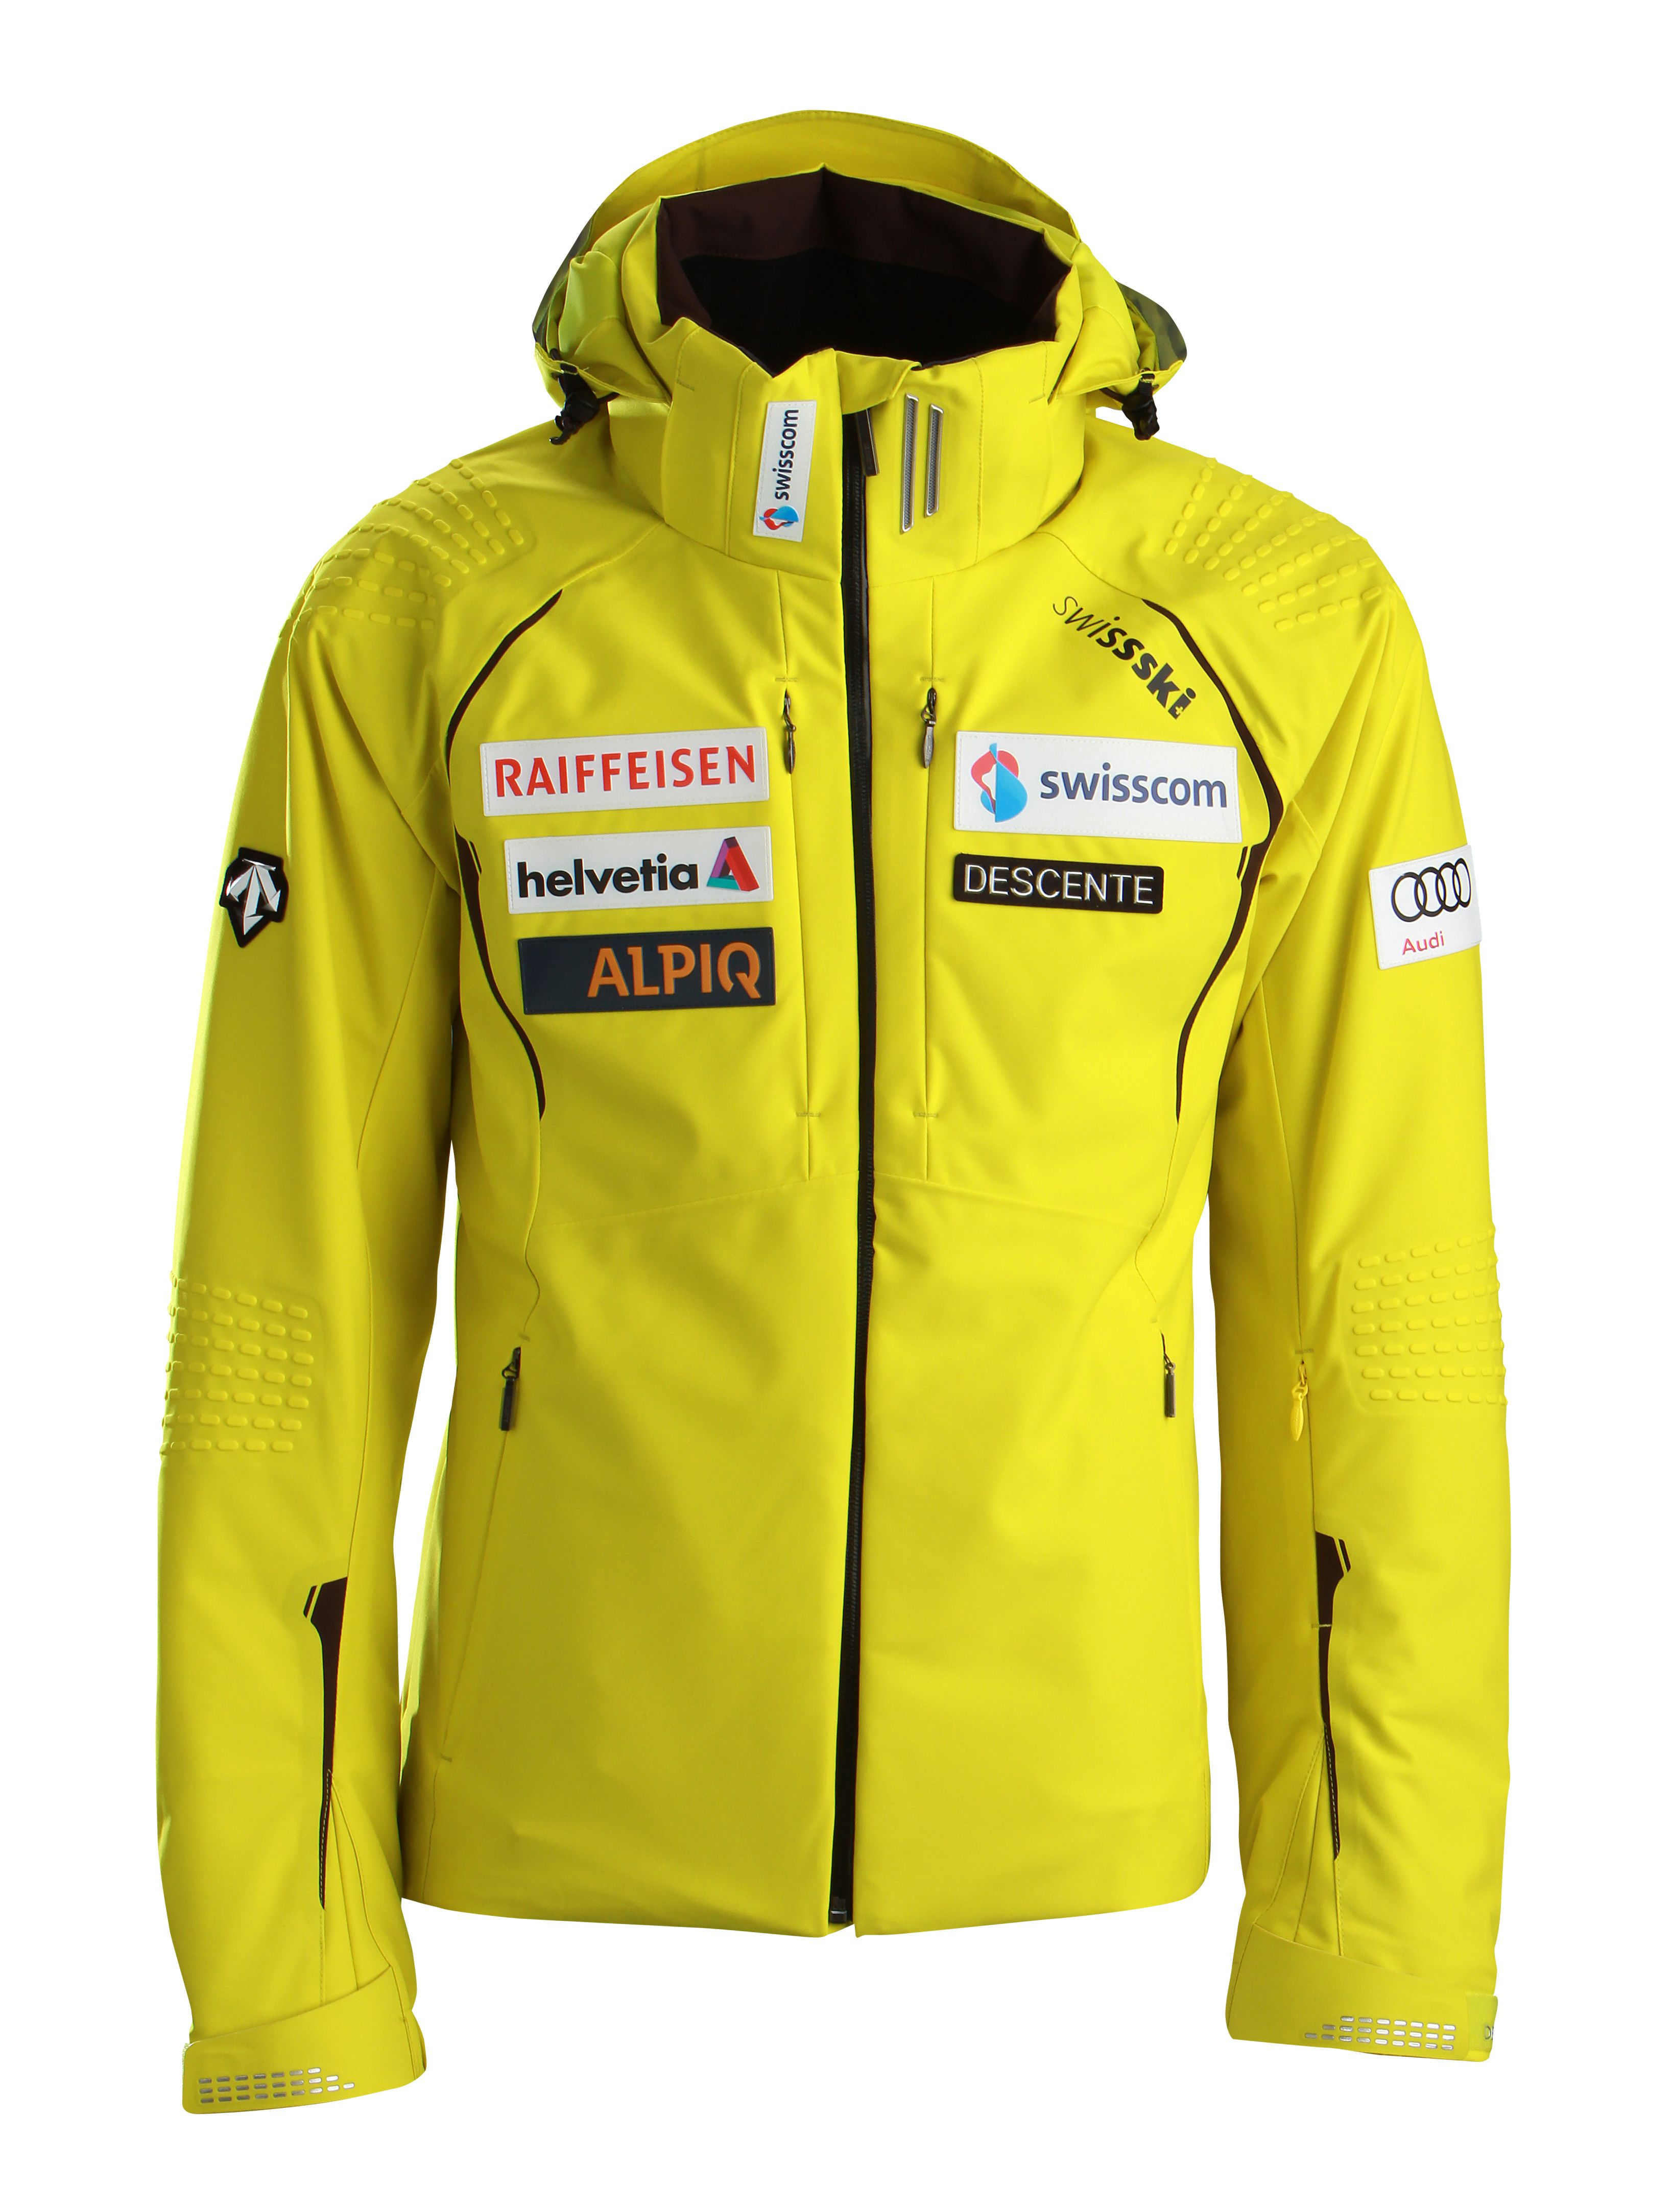 37887572a Descente s Swiss World Cup Replica Jacket is exactly that. Worn by the  Swiss Alpine team